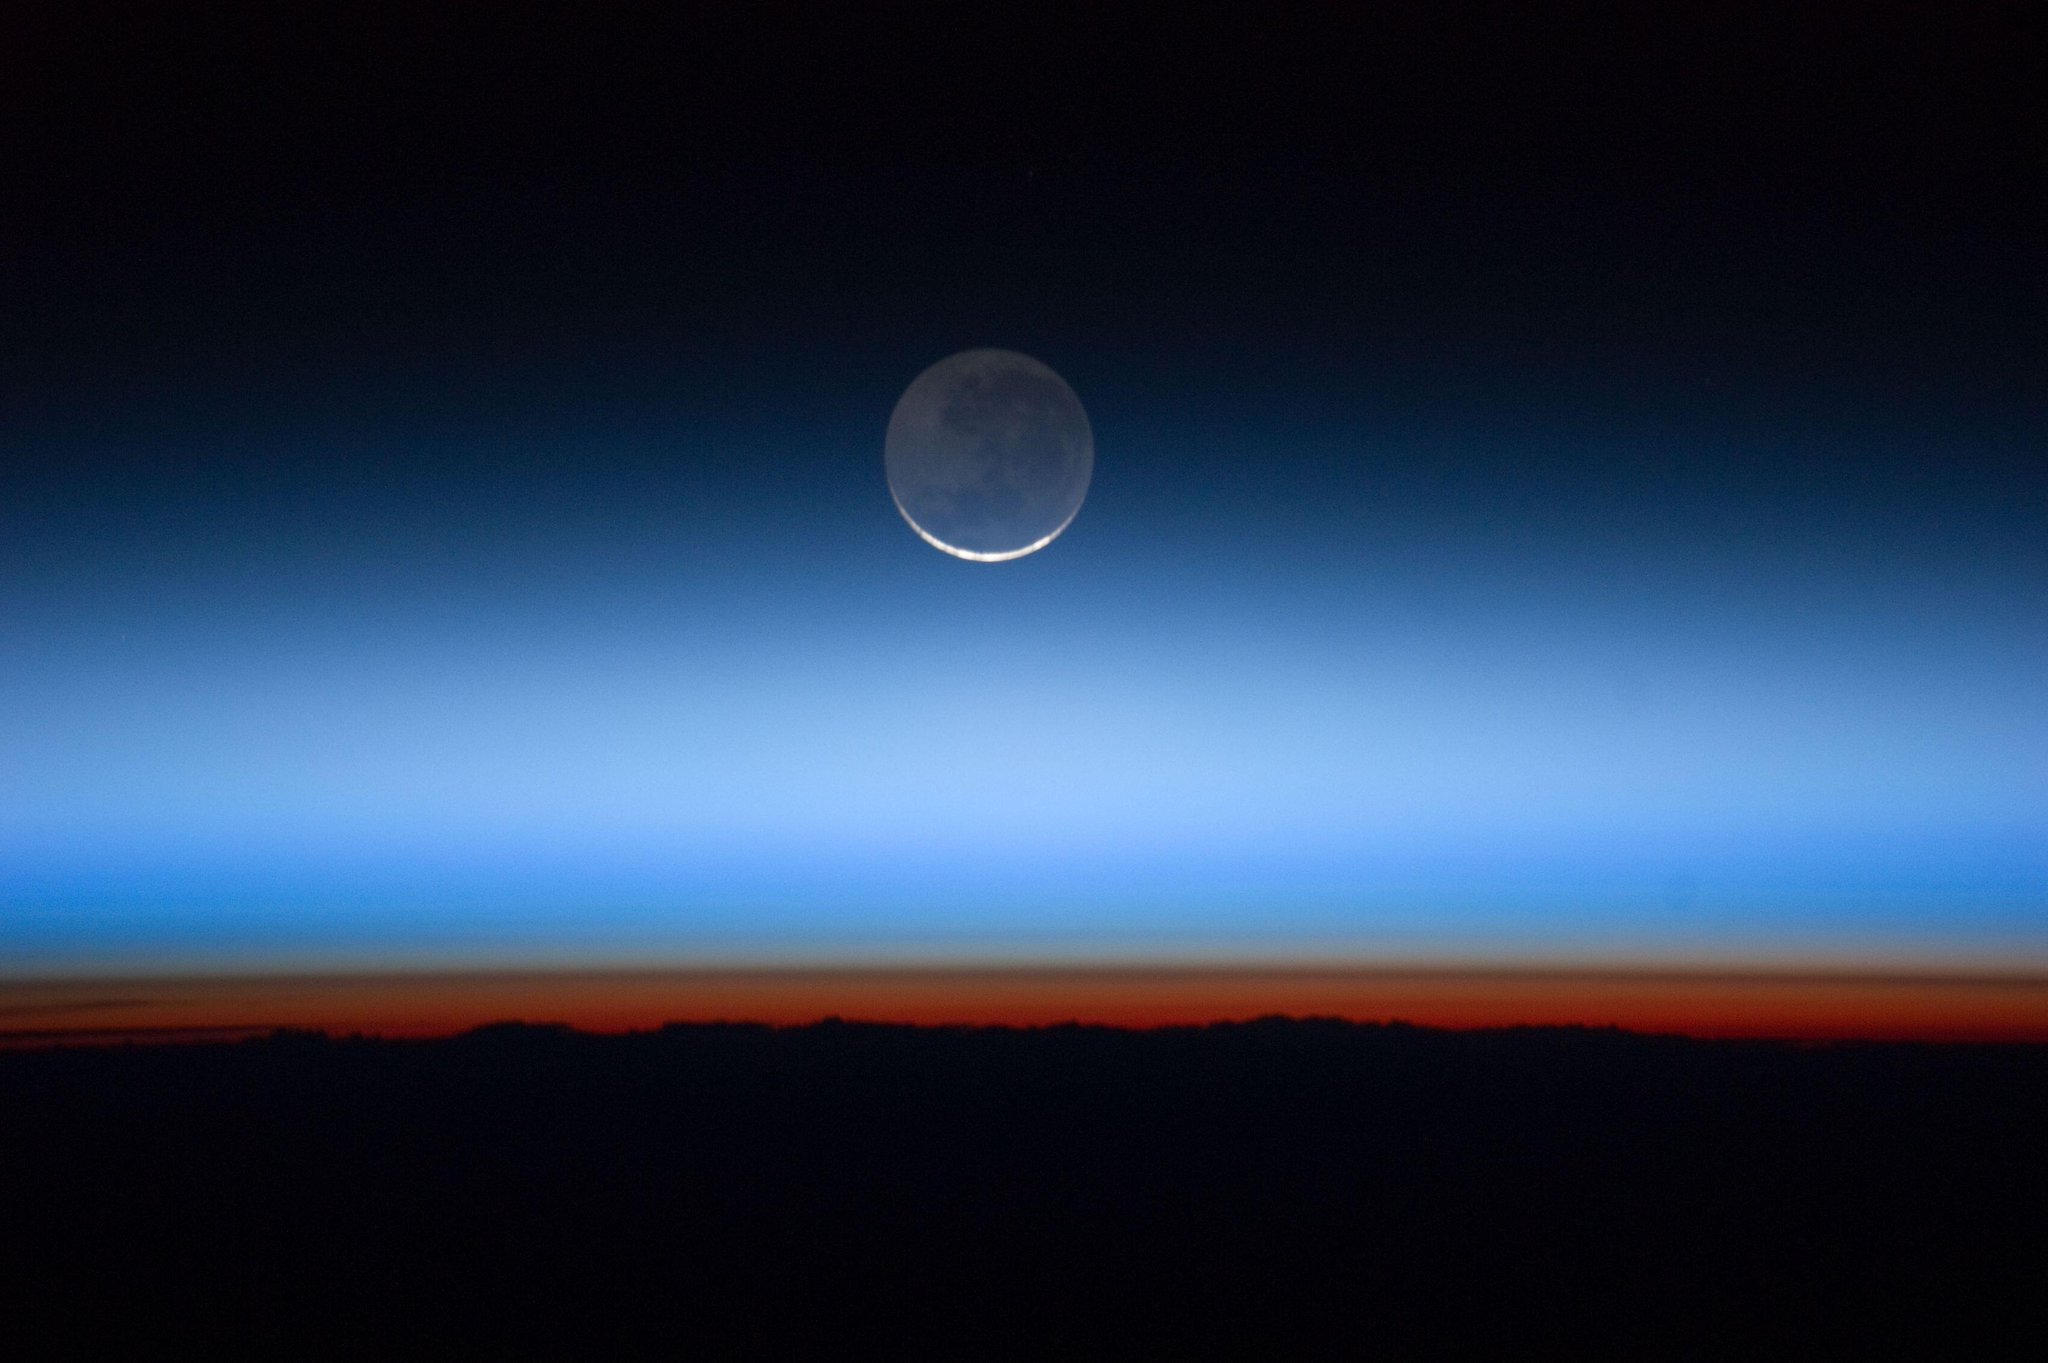 Twitter / PC0101: Moon crescent, seen from #ISS ...